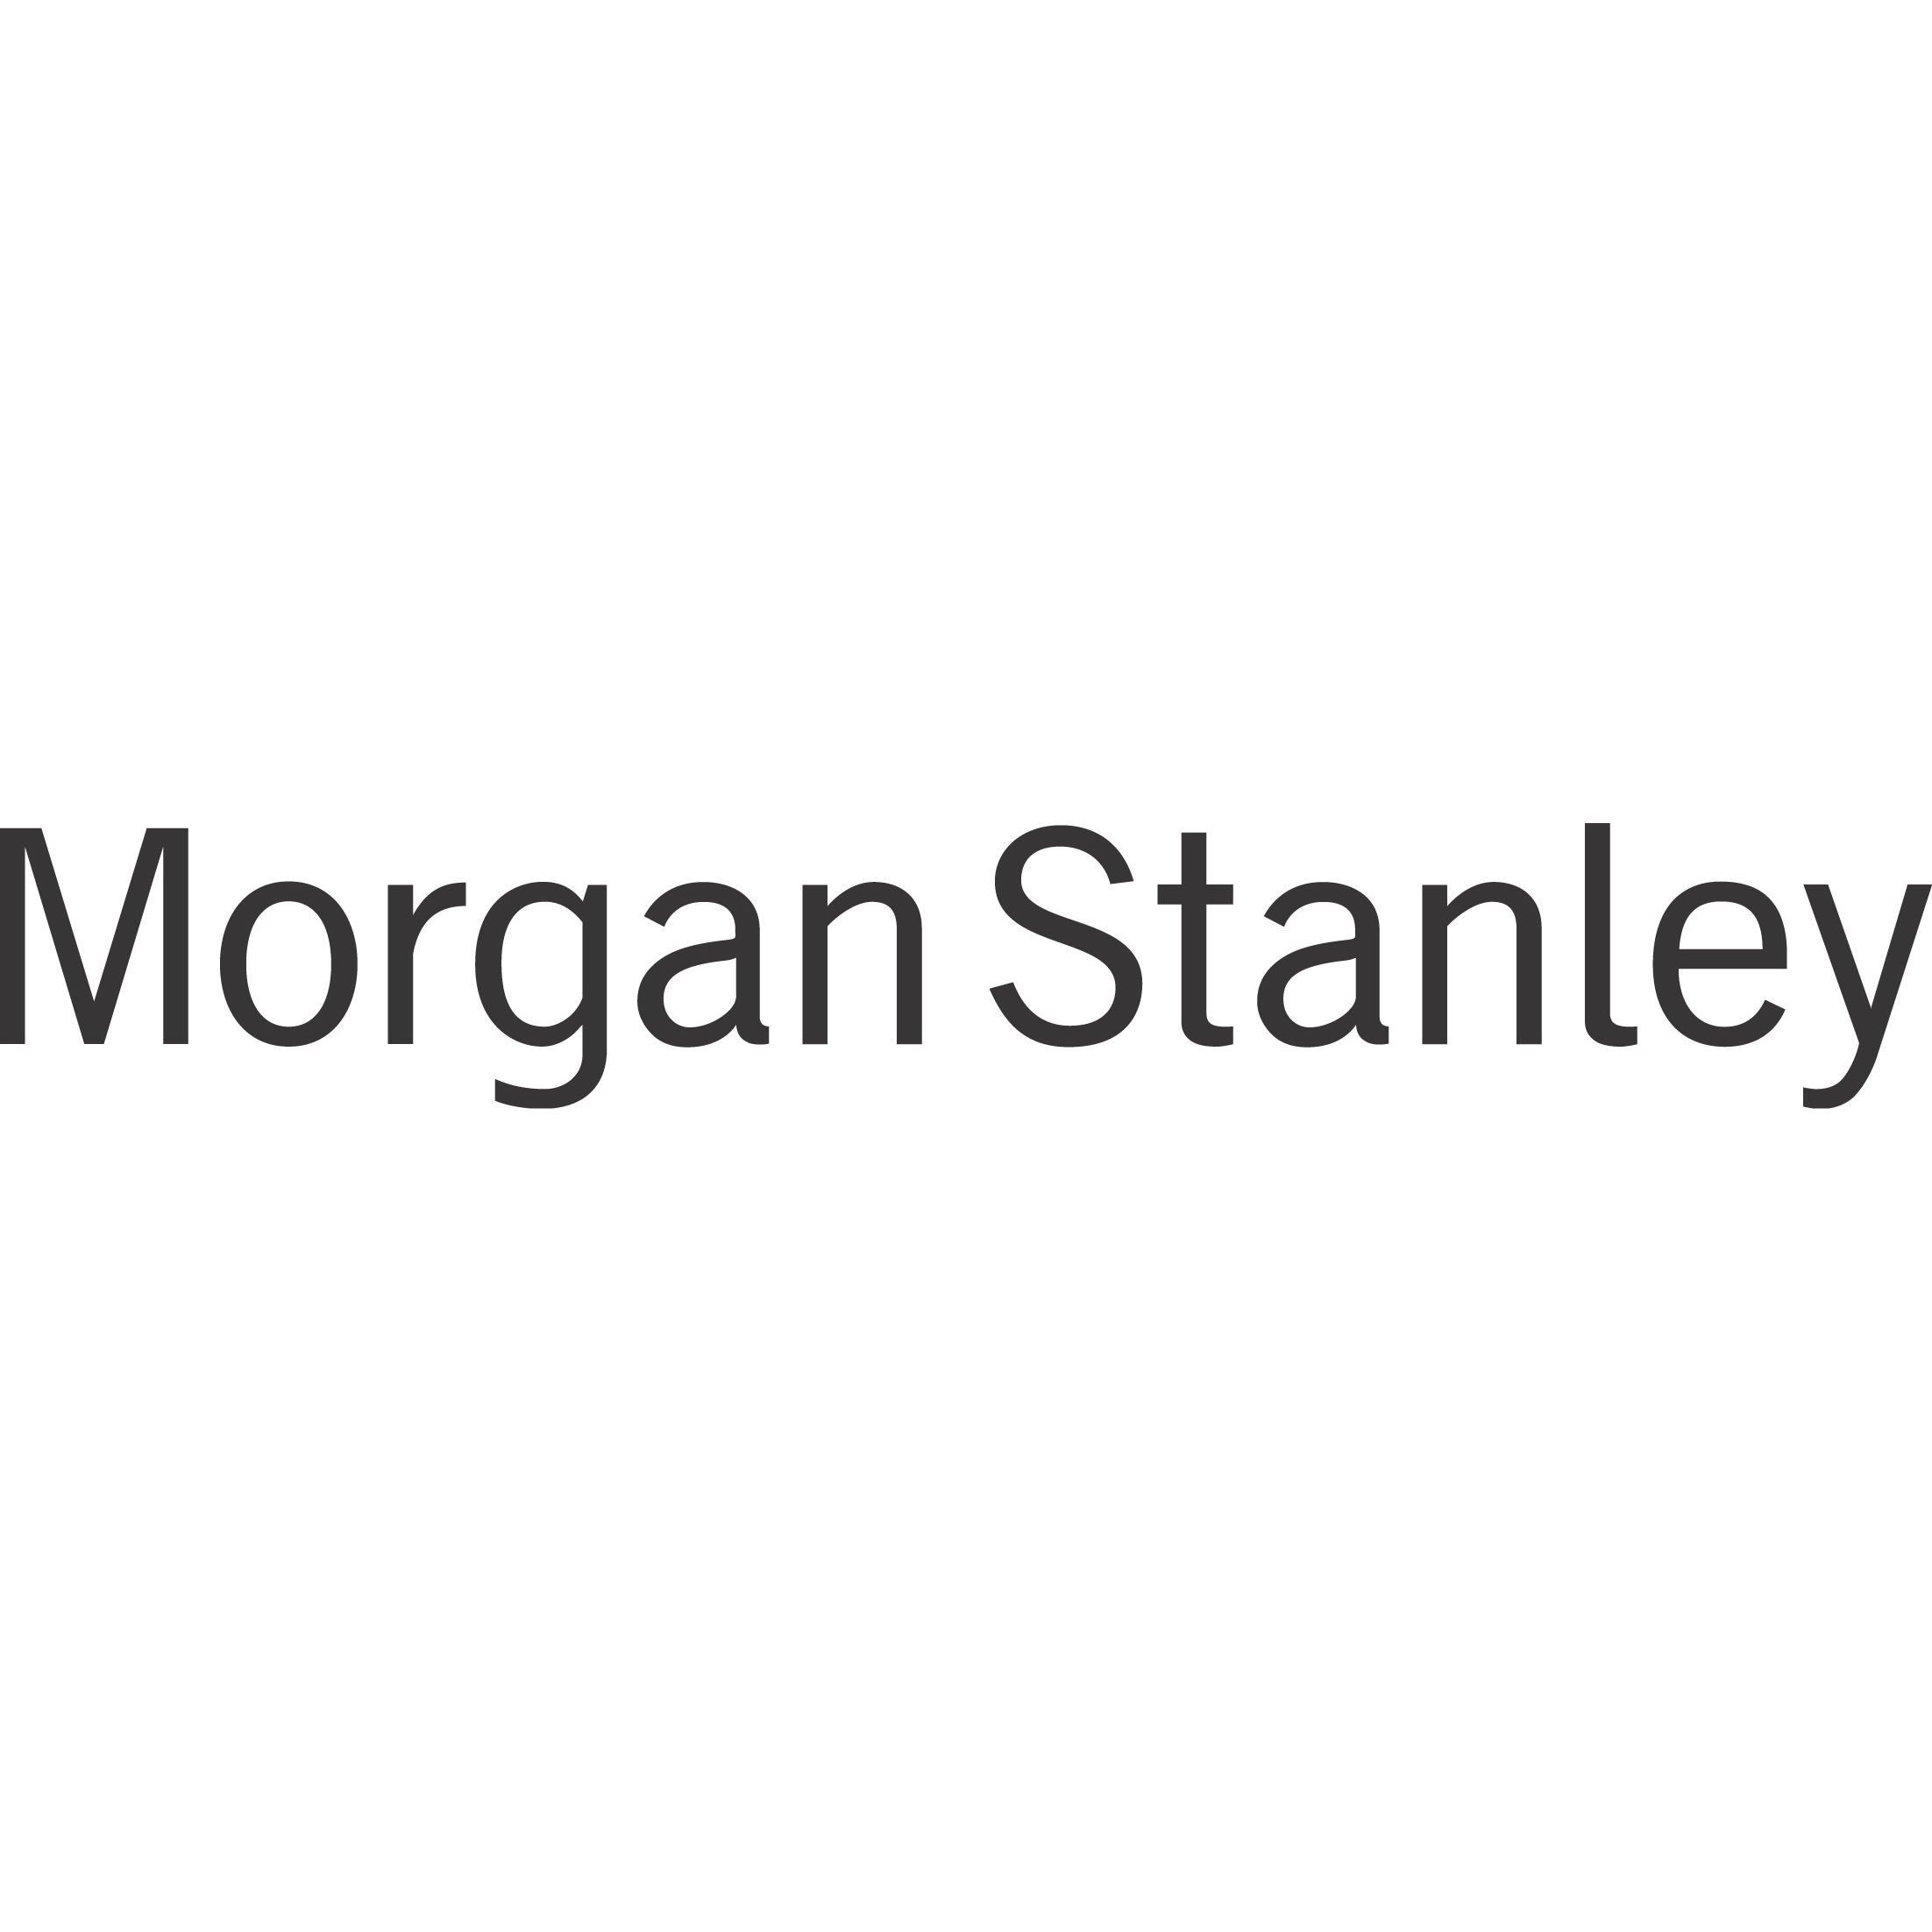 Al Fierro - Morgan Stanley